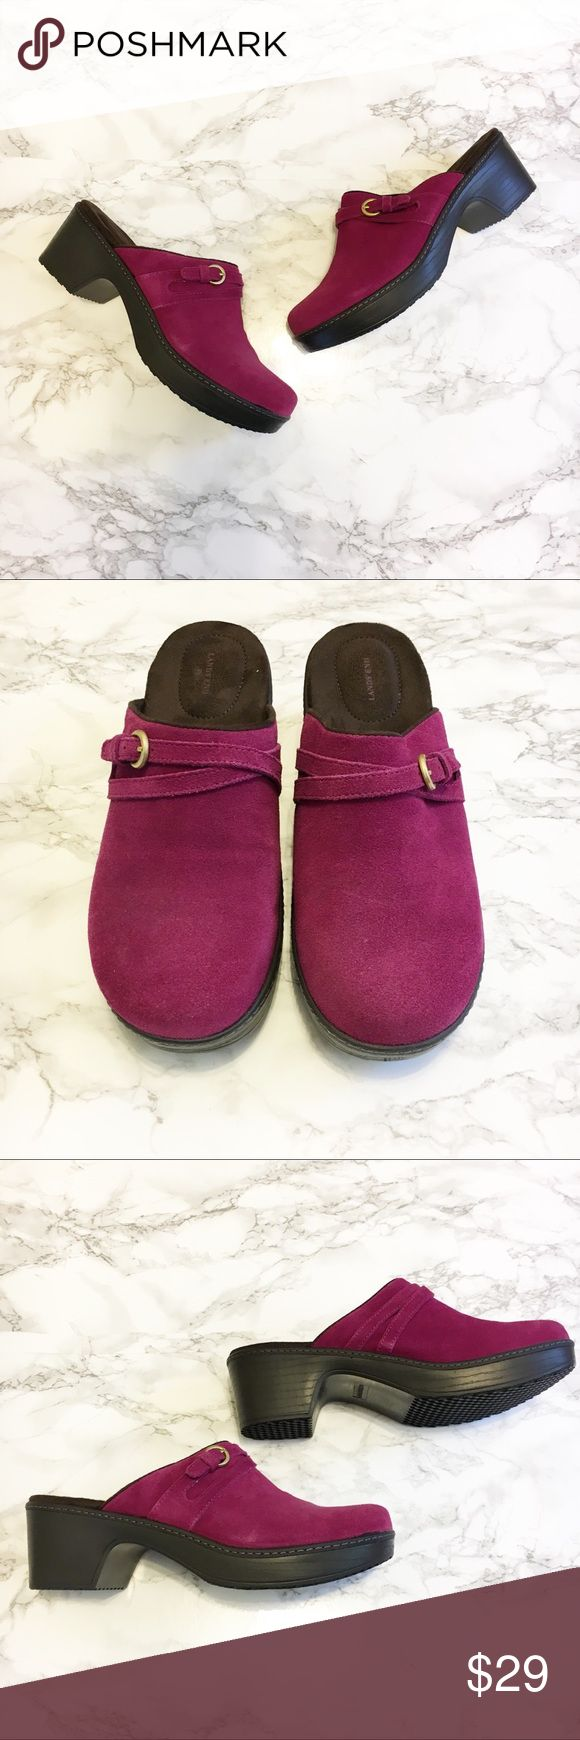 Land's End Carly Clog Mule Shoes Land's End Carly Clog Mules in Raspberry  Slip on Genuine suede Gold buckle Cushioned insole  • NWOT • Size: Women's 8 (8B) • Measurements: Land's End Shoes Mules & Clogs